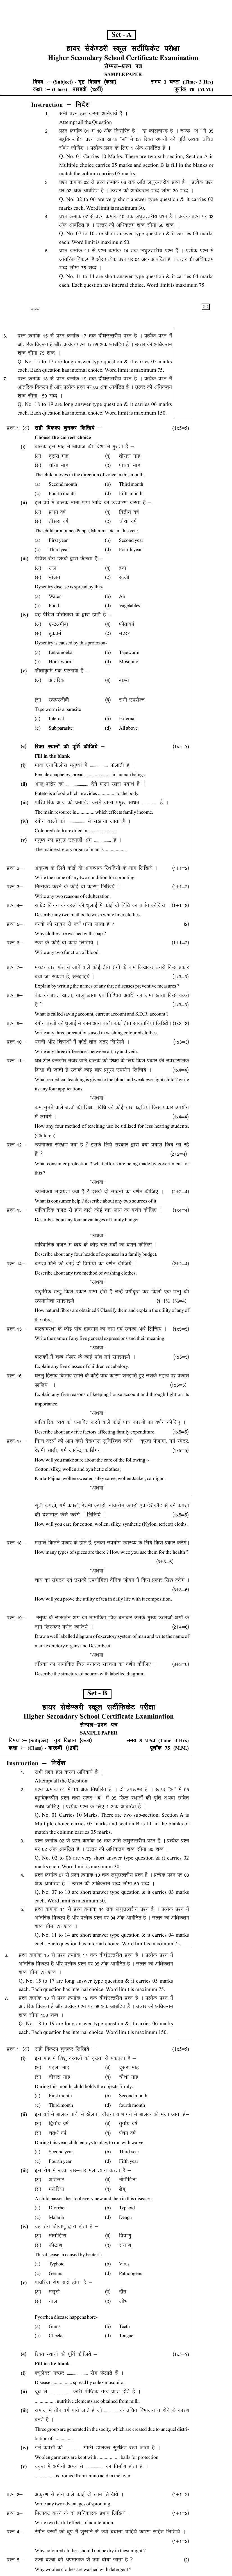 Chattisgarh Board Class 12 Home Science Sample Paper